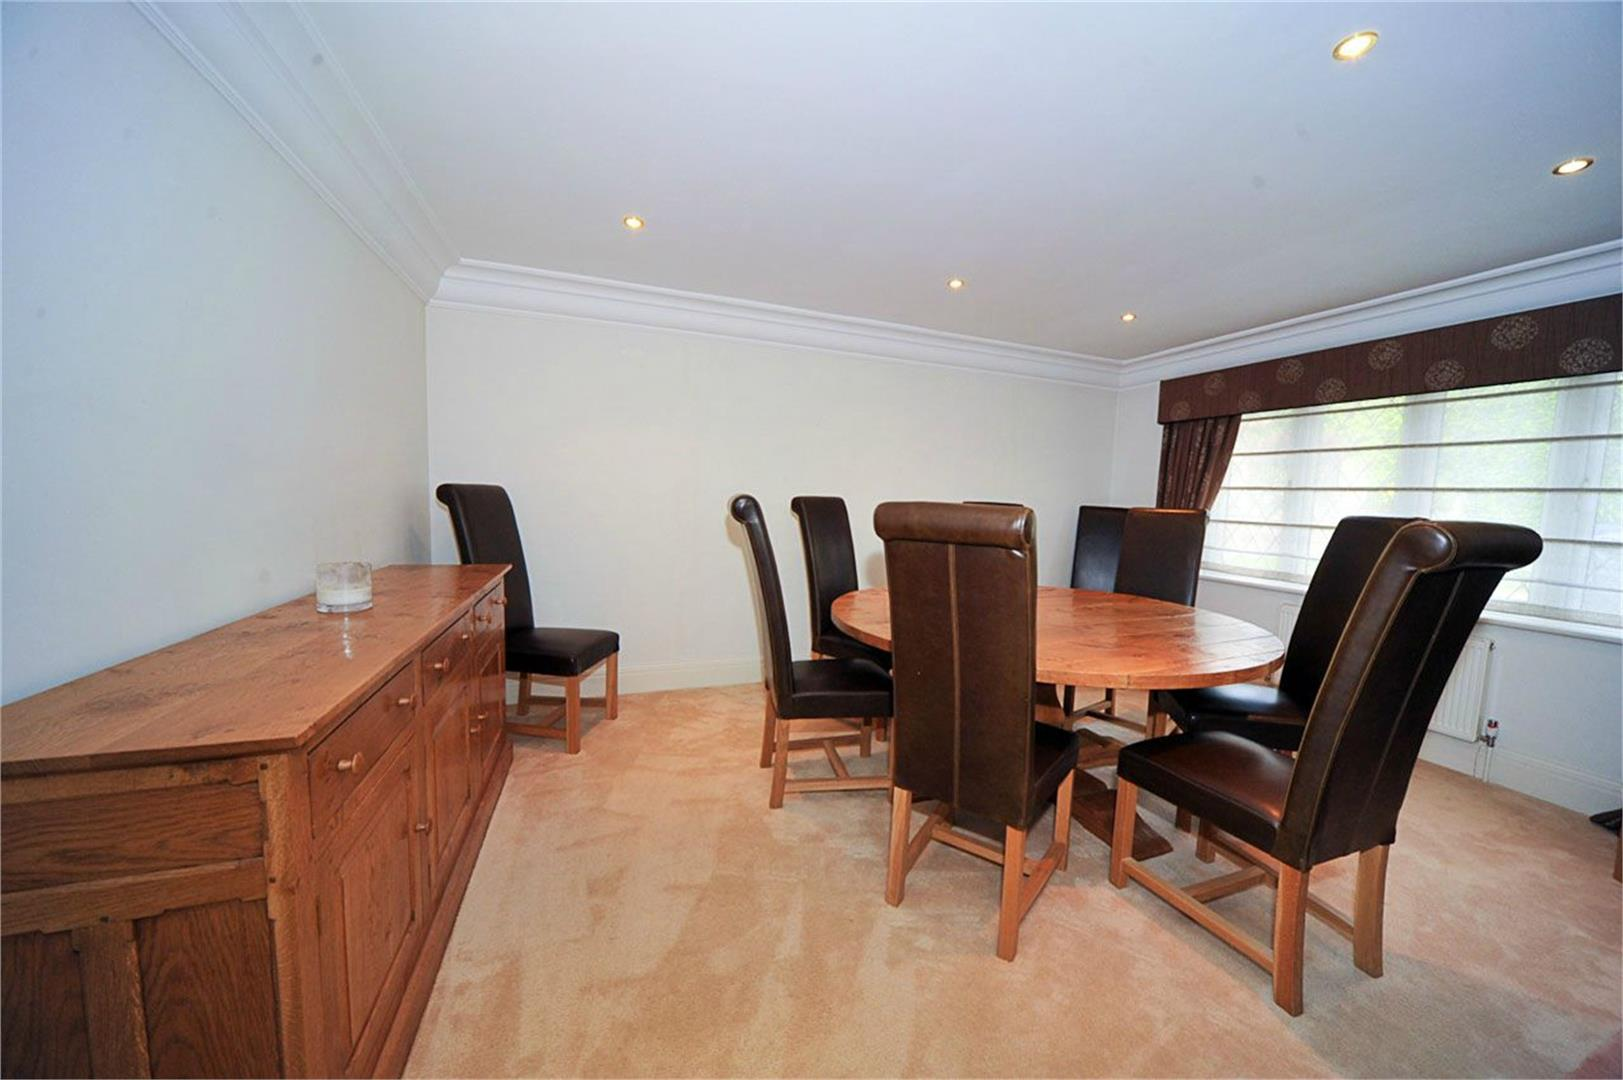 5 bed to rent - (Property Image 3)